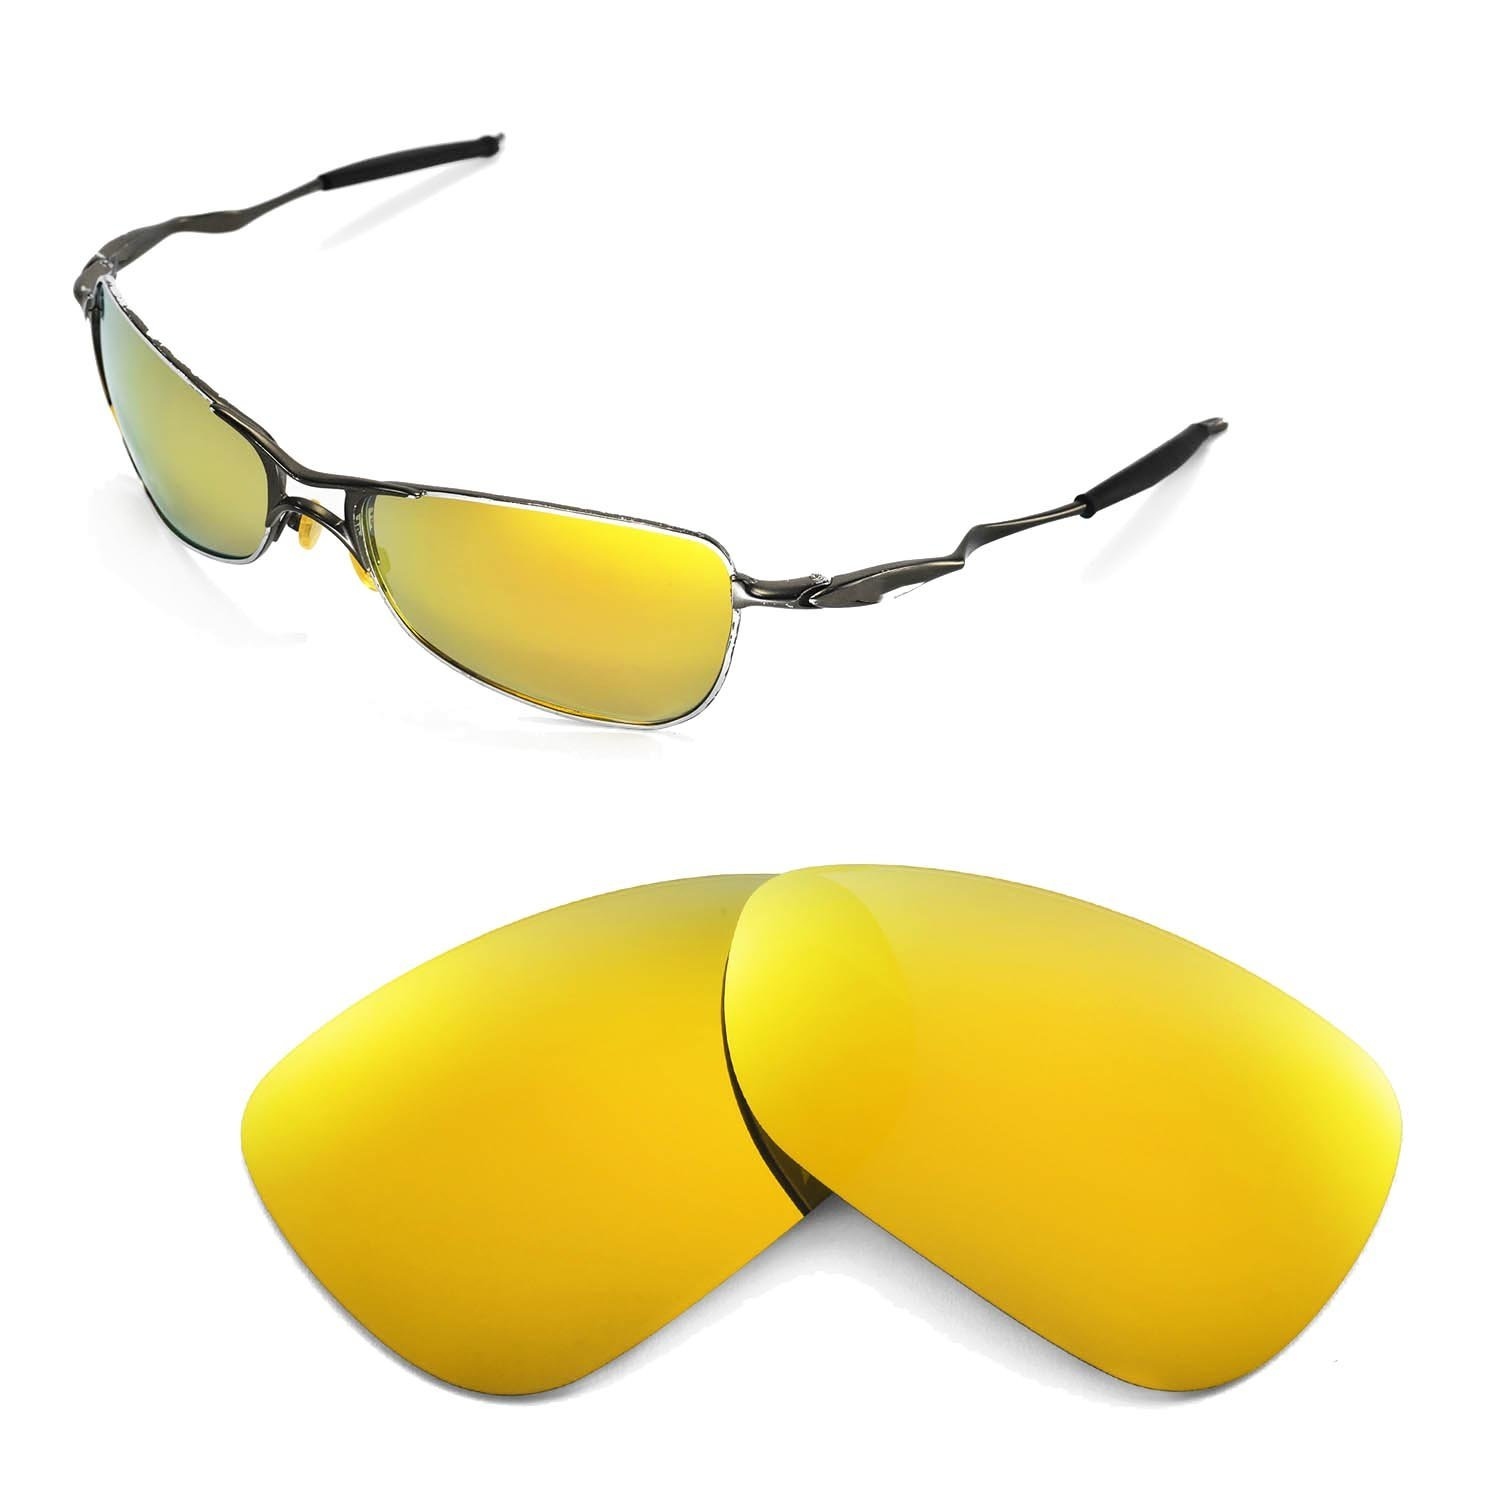 0f36dc16bb3 Walleva Replacement Lenses for Oakley Crosshair 1.0 (2005-2006 version)  Sunglasses - Multiple Options (24K Gold Mirror Coated - Polarized)   Amazon.co.uk  ...